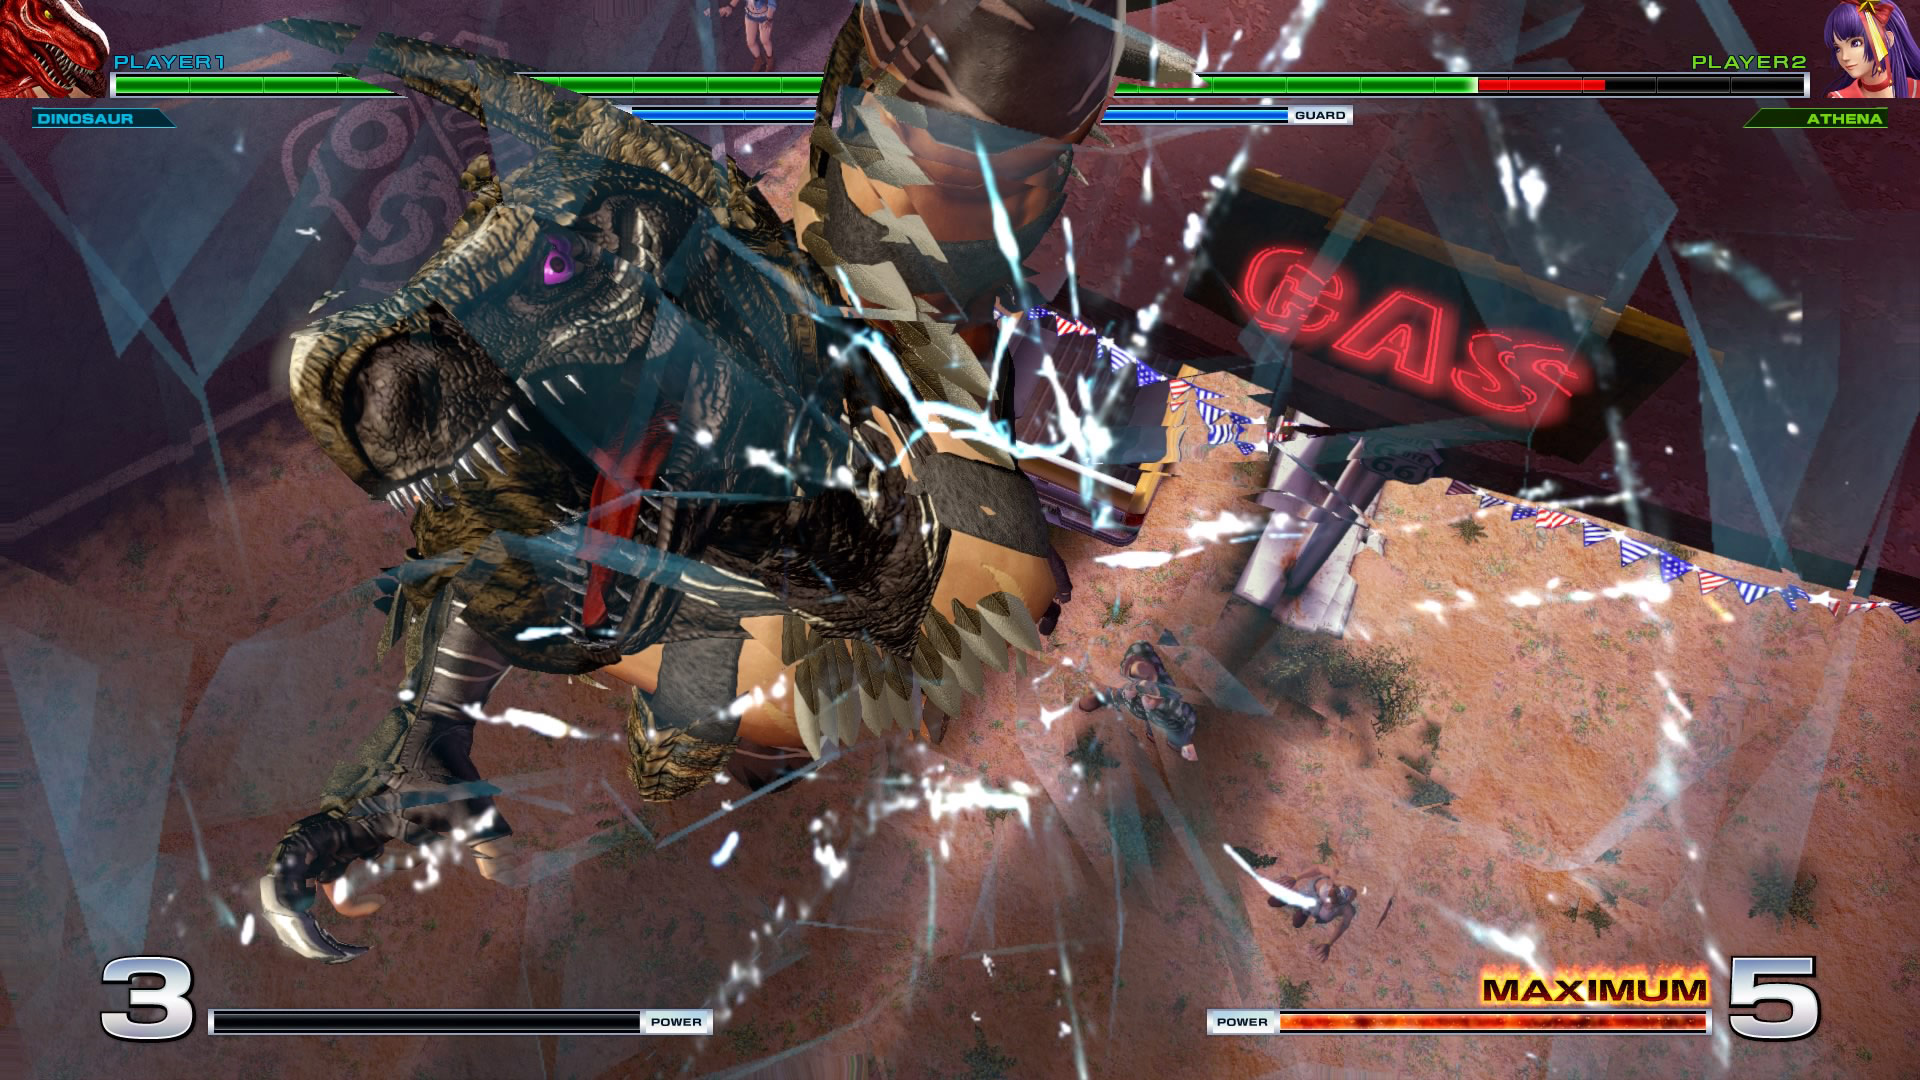 King of Fighters 14 1.10 graphics update 50 out of 60 image gallery